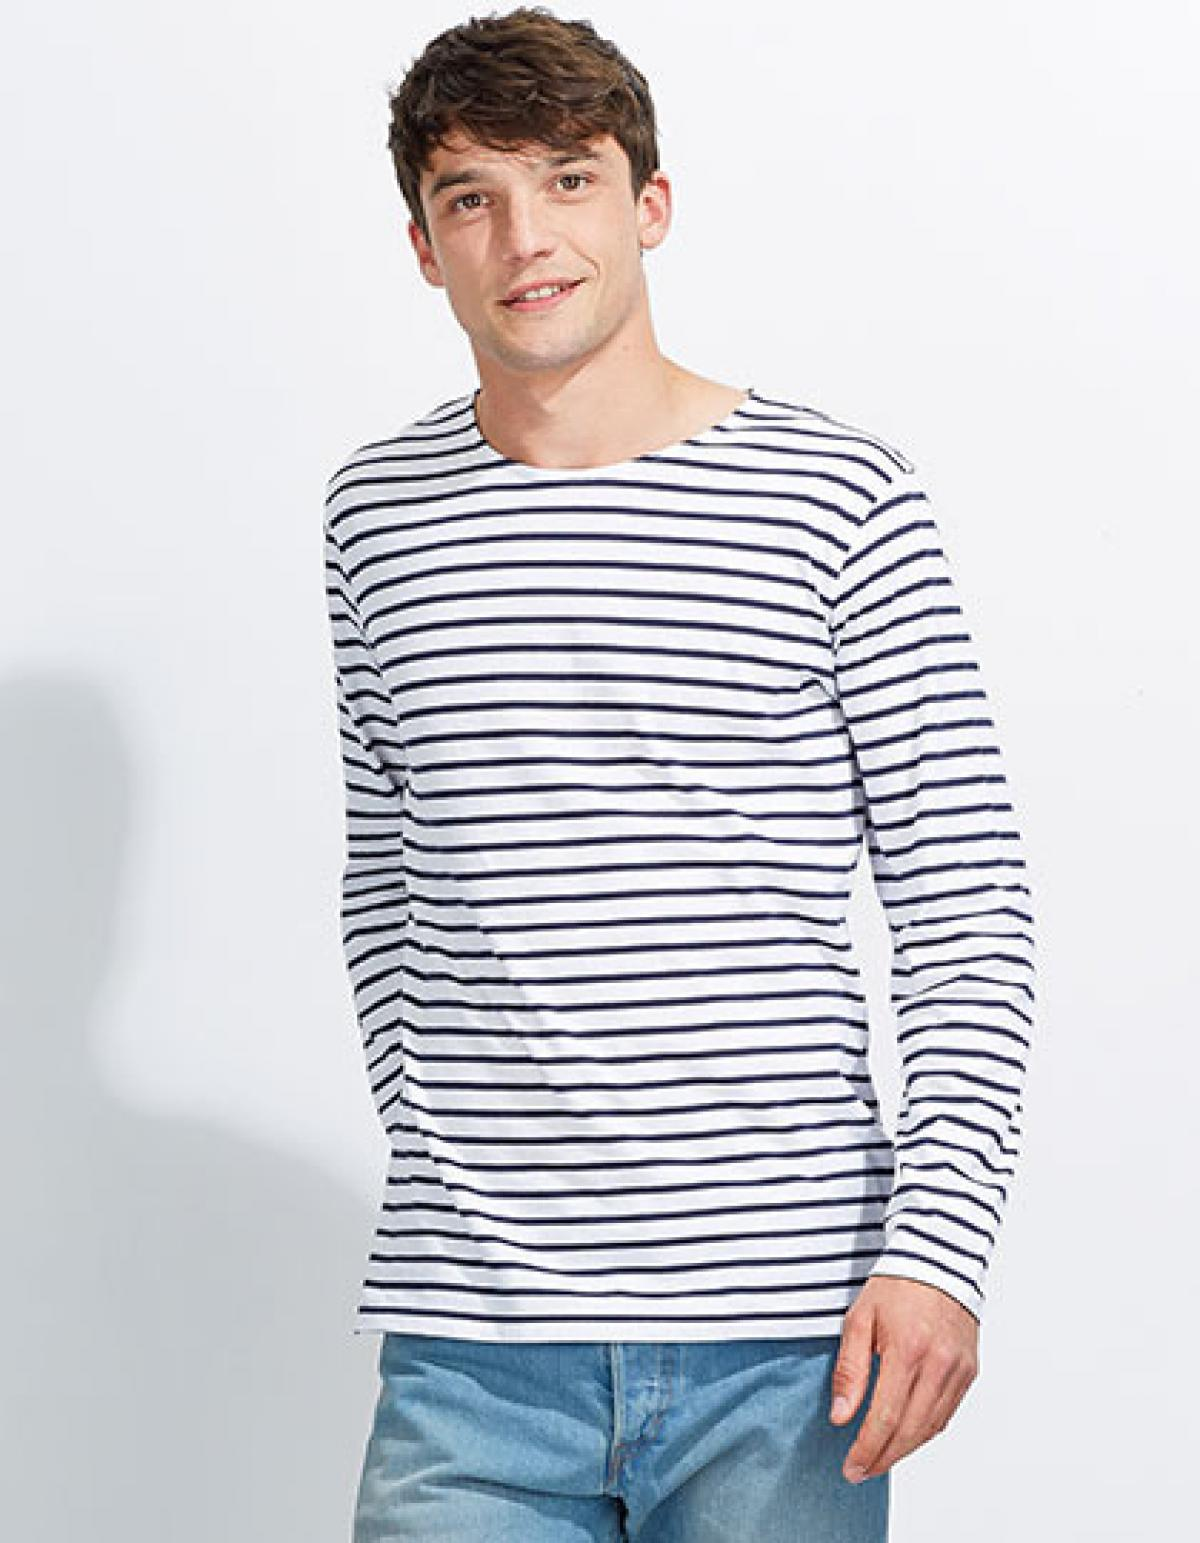 herren longsleeve striped t shirt marine gestreift rexlander s. Black Bedroom Furniture Sets. Home Design Ideas